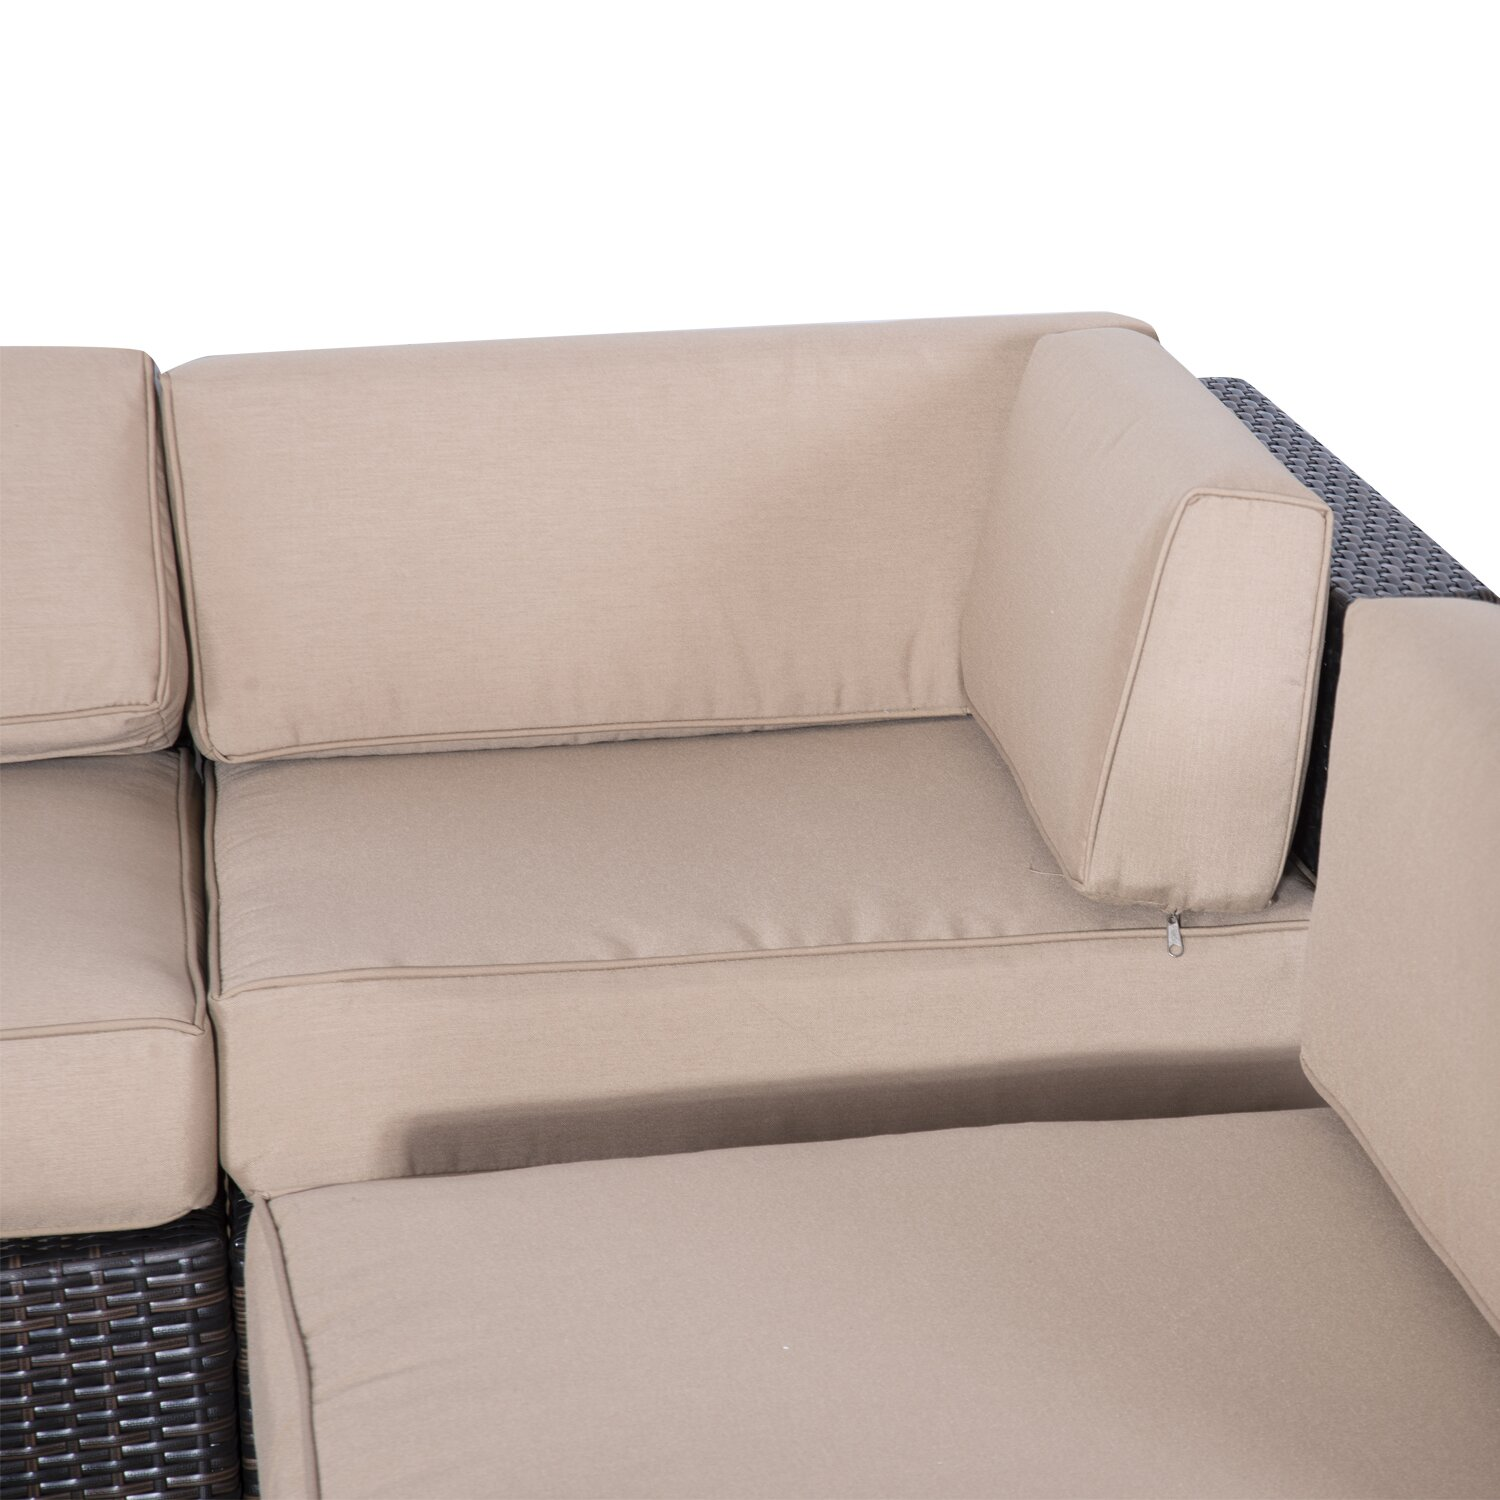 Outsunny outsunny 9 piece seating group with cushions for Chaise lounge couch set